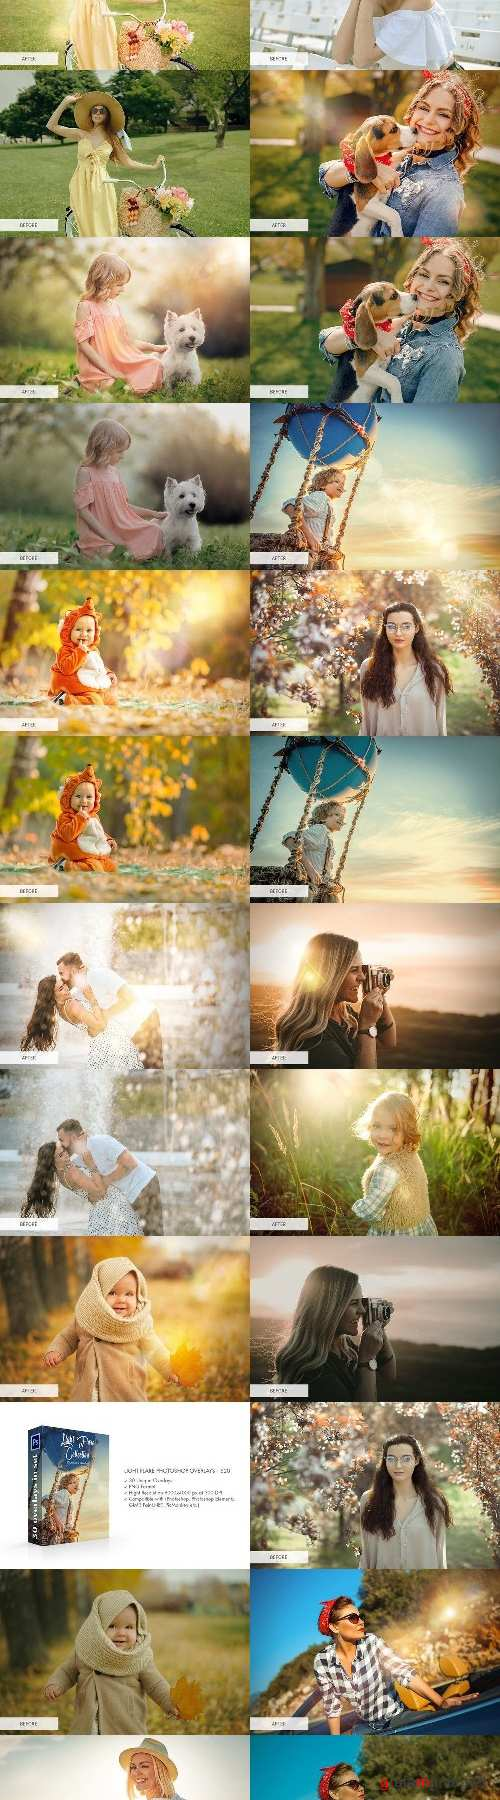 Light Flare Photoshop Overlays - 4298685